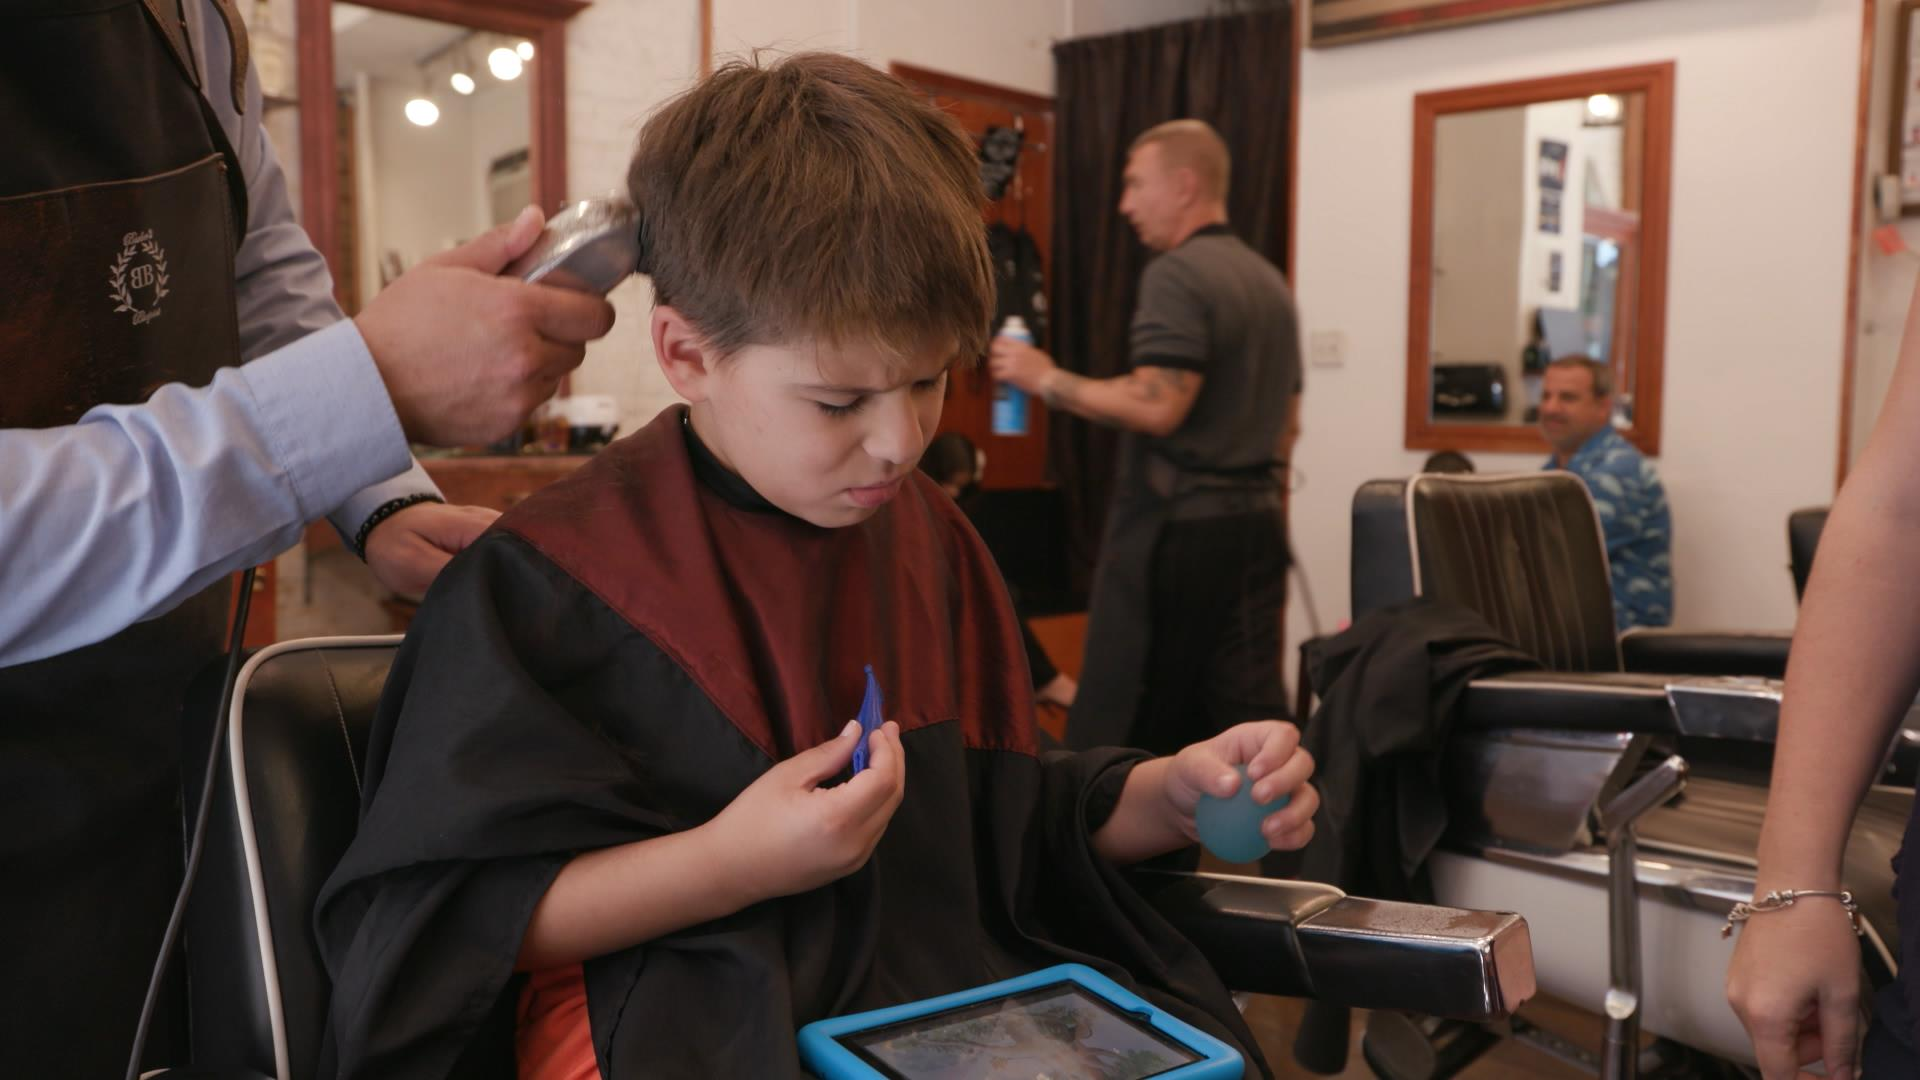 Barbershop specializes in haircuts for people with autism and special needs